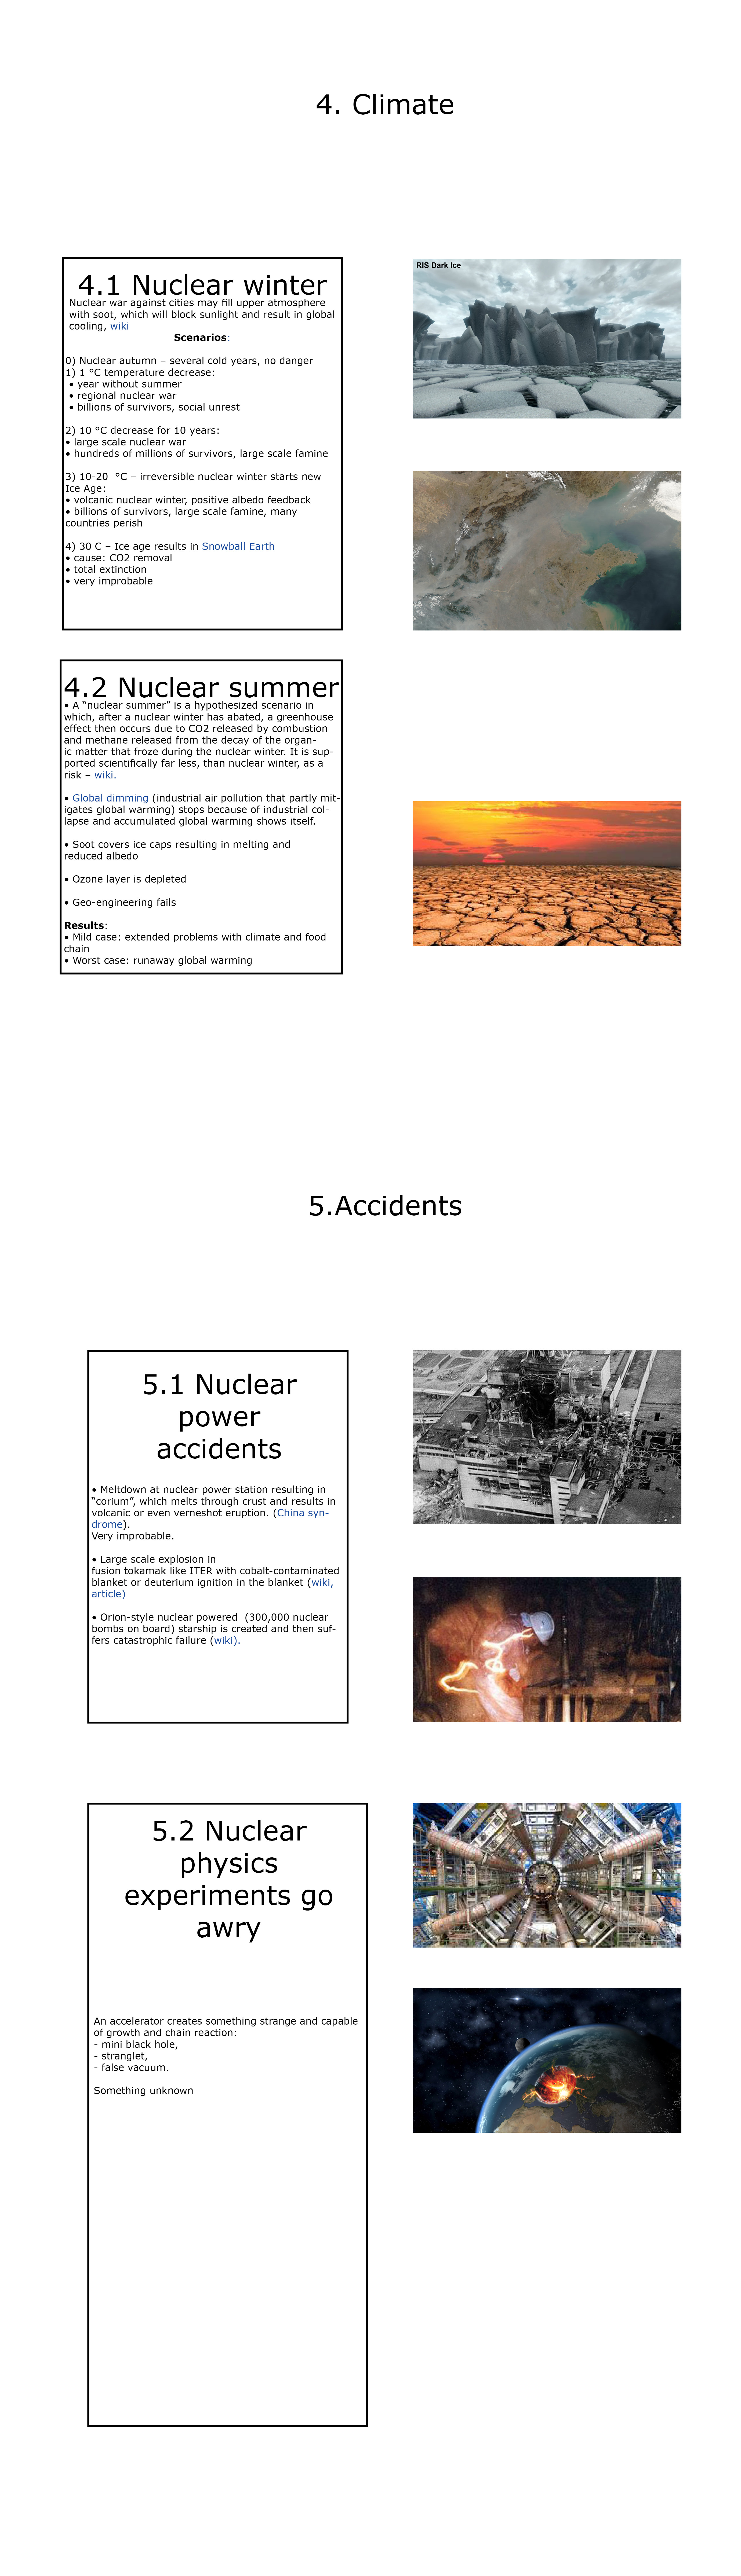 Global catastrophic risks connected with nuclear weapons and